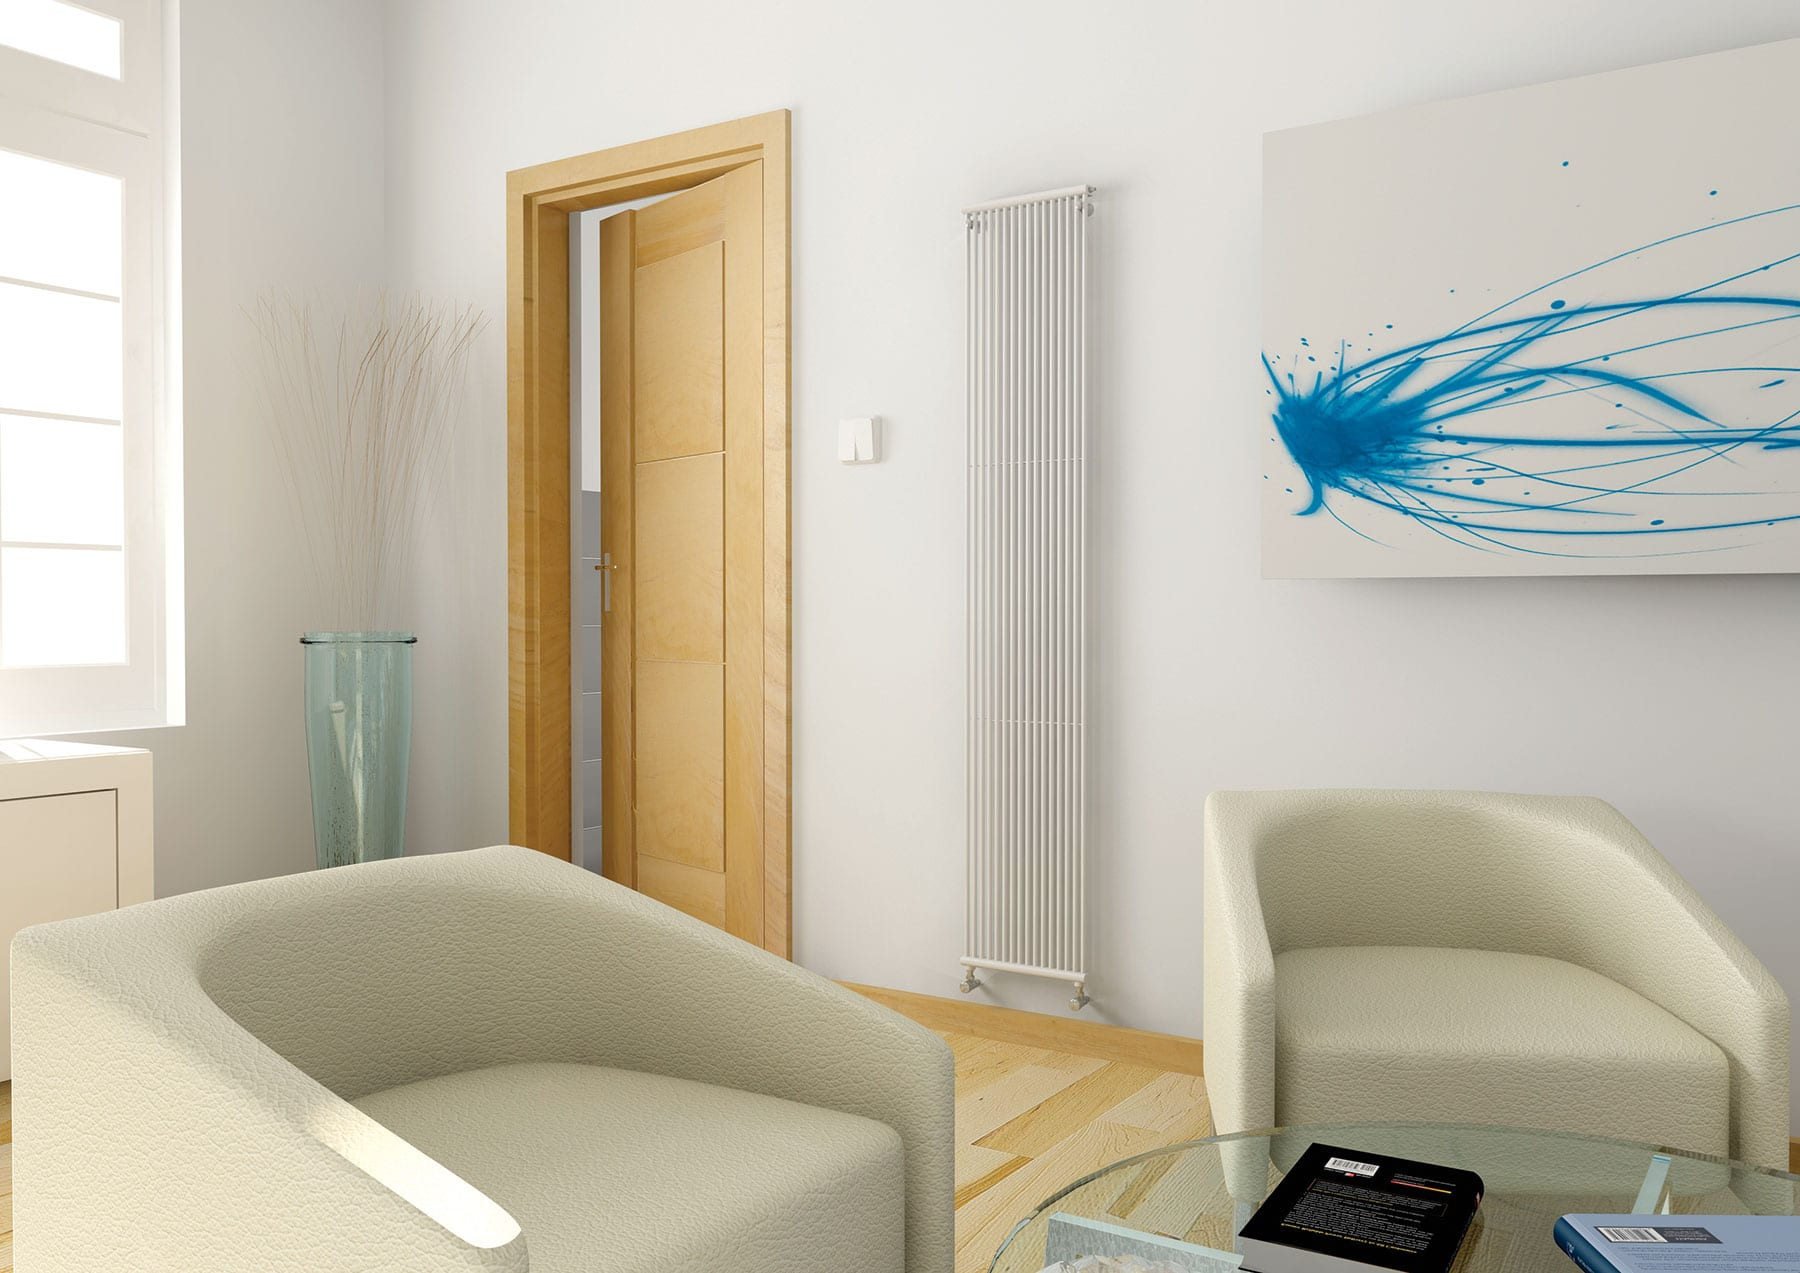 Aqua Vistaline Radiators